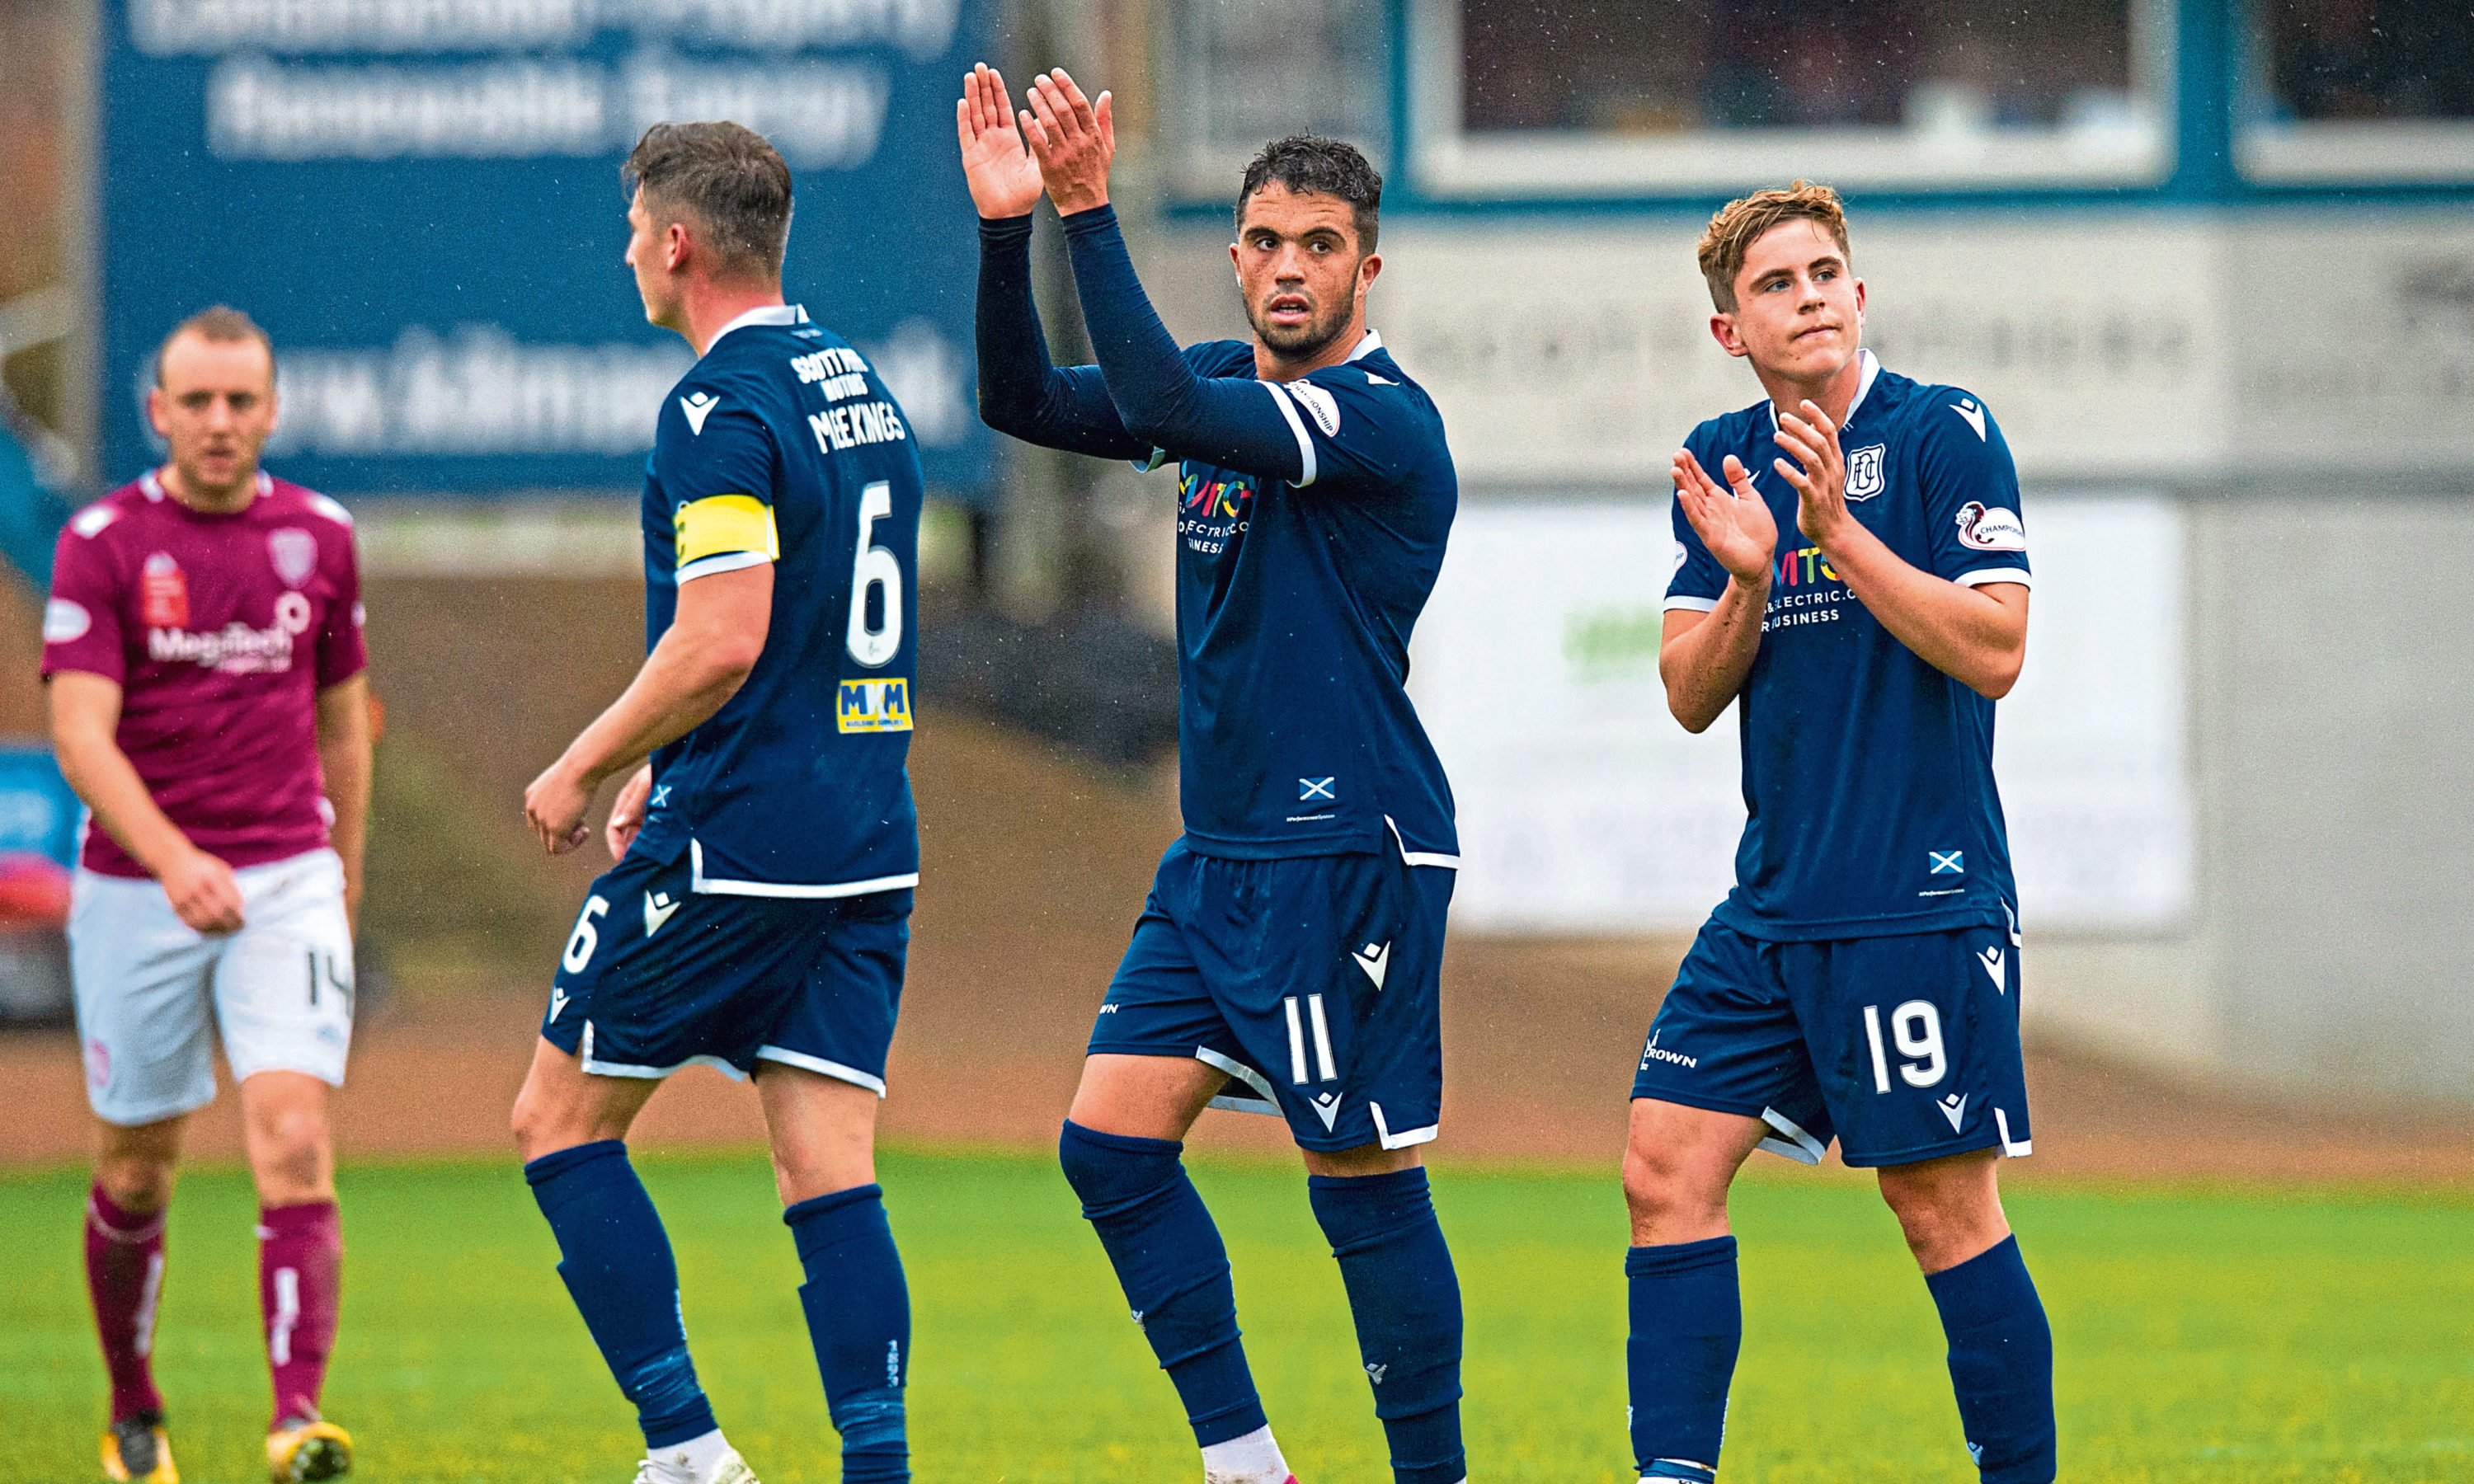 Dundee's Declan McDaid, centre, and Finlay Robertson applaud home fans during the match between Dundee and Arbroath at the Kilmac Stadium on Saturday.